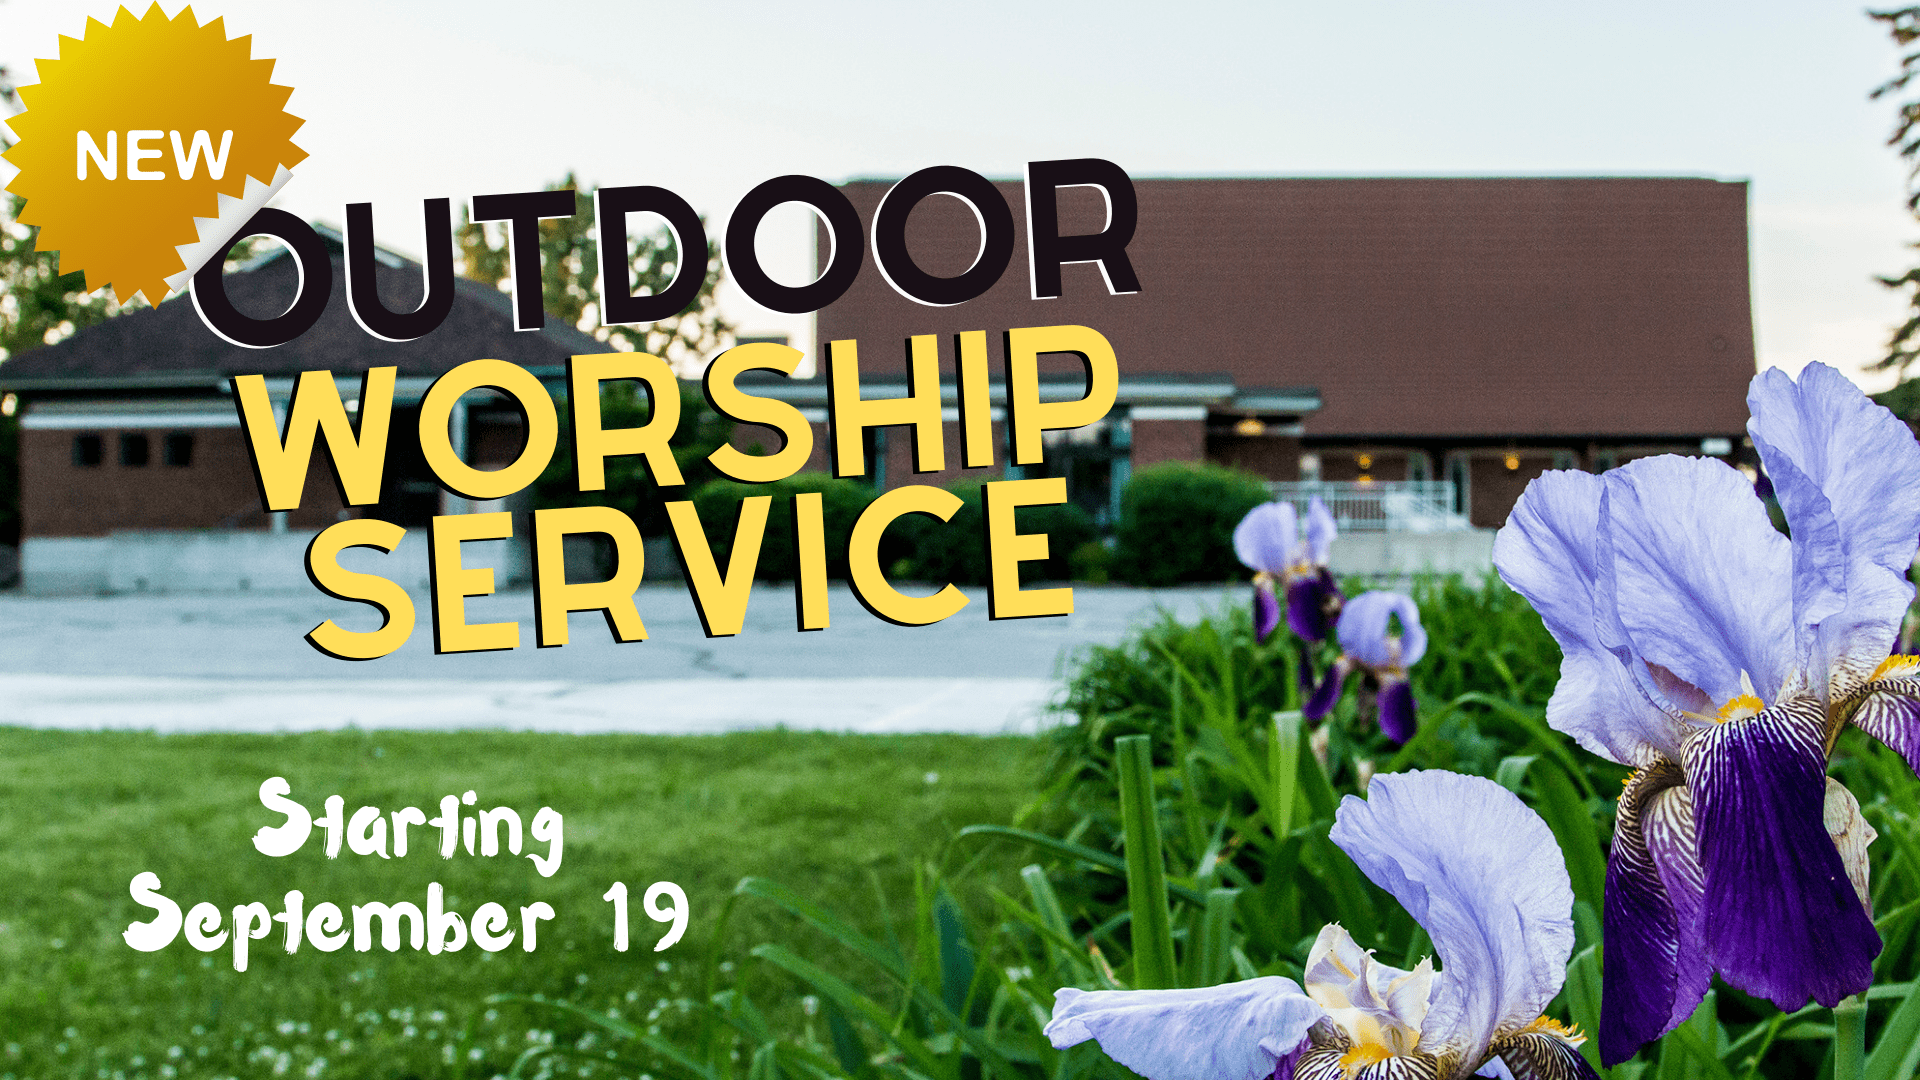 NEW: Outdoor worship services